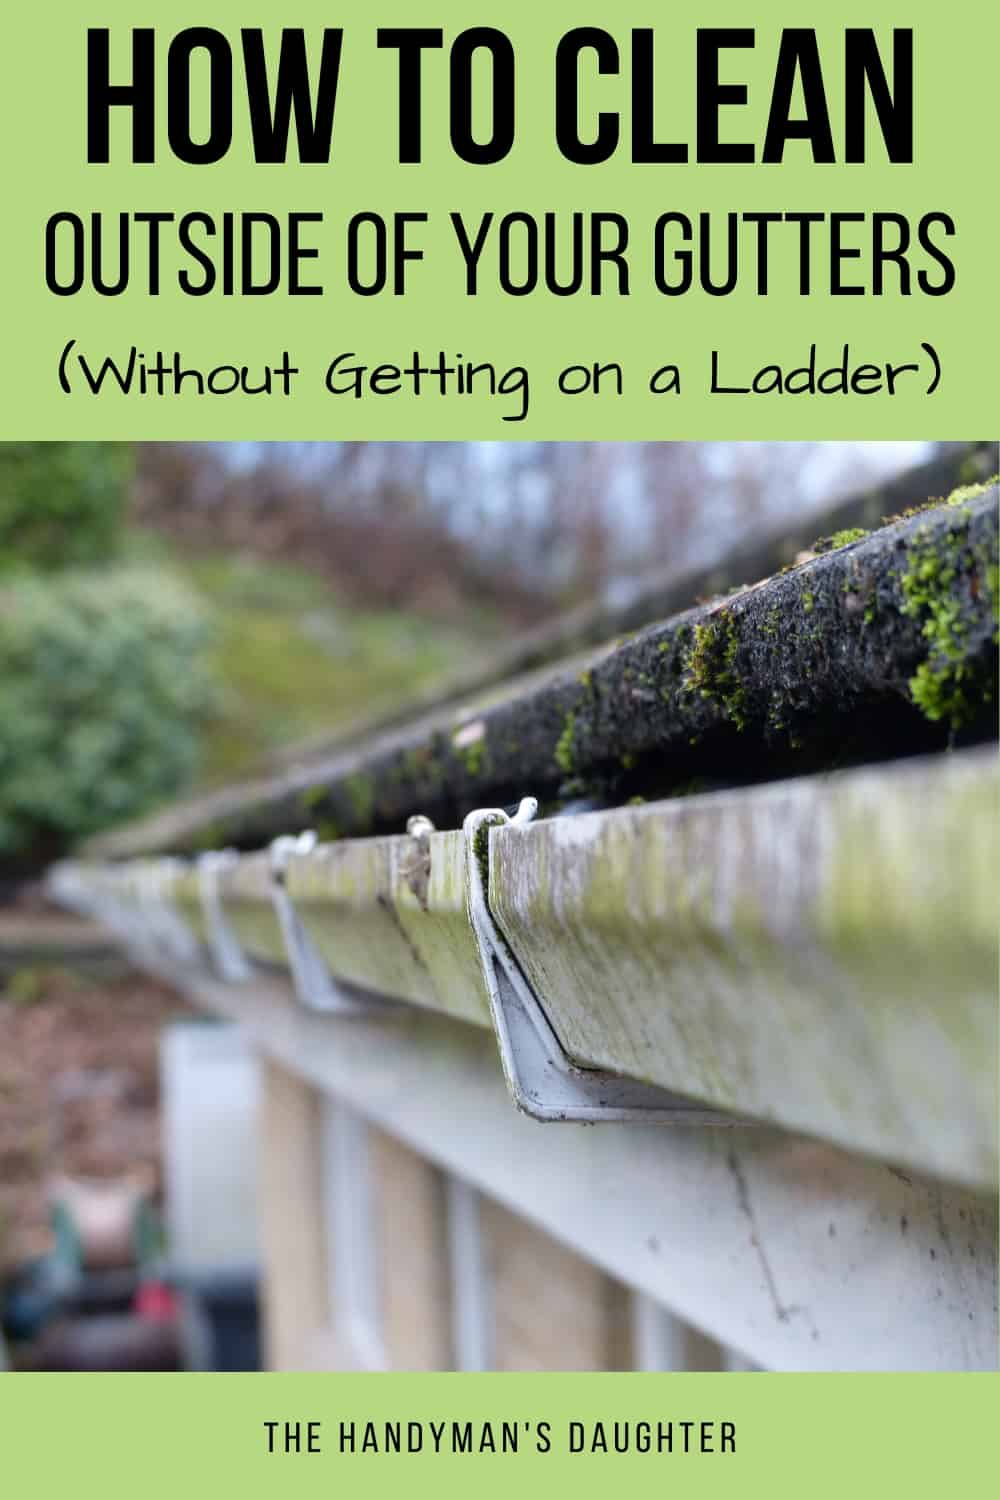 How to clean outside of gutters